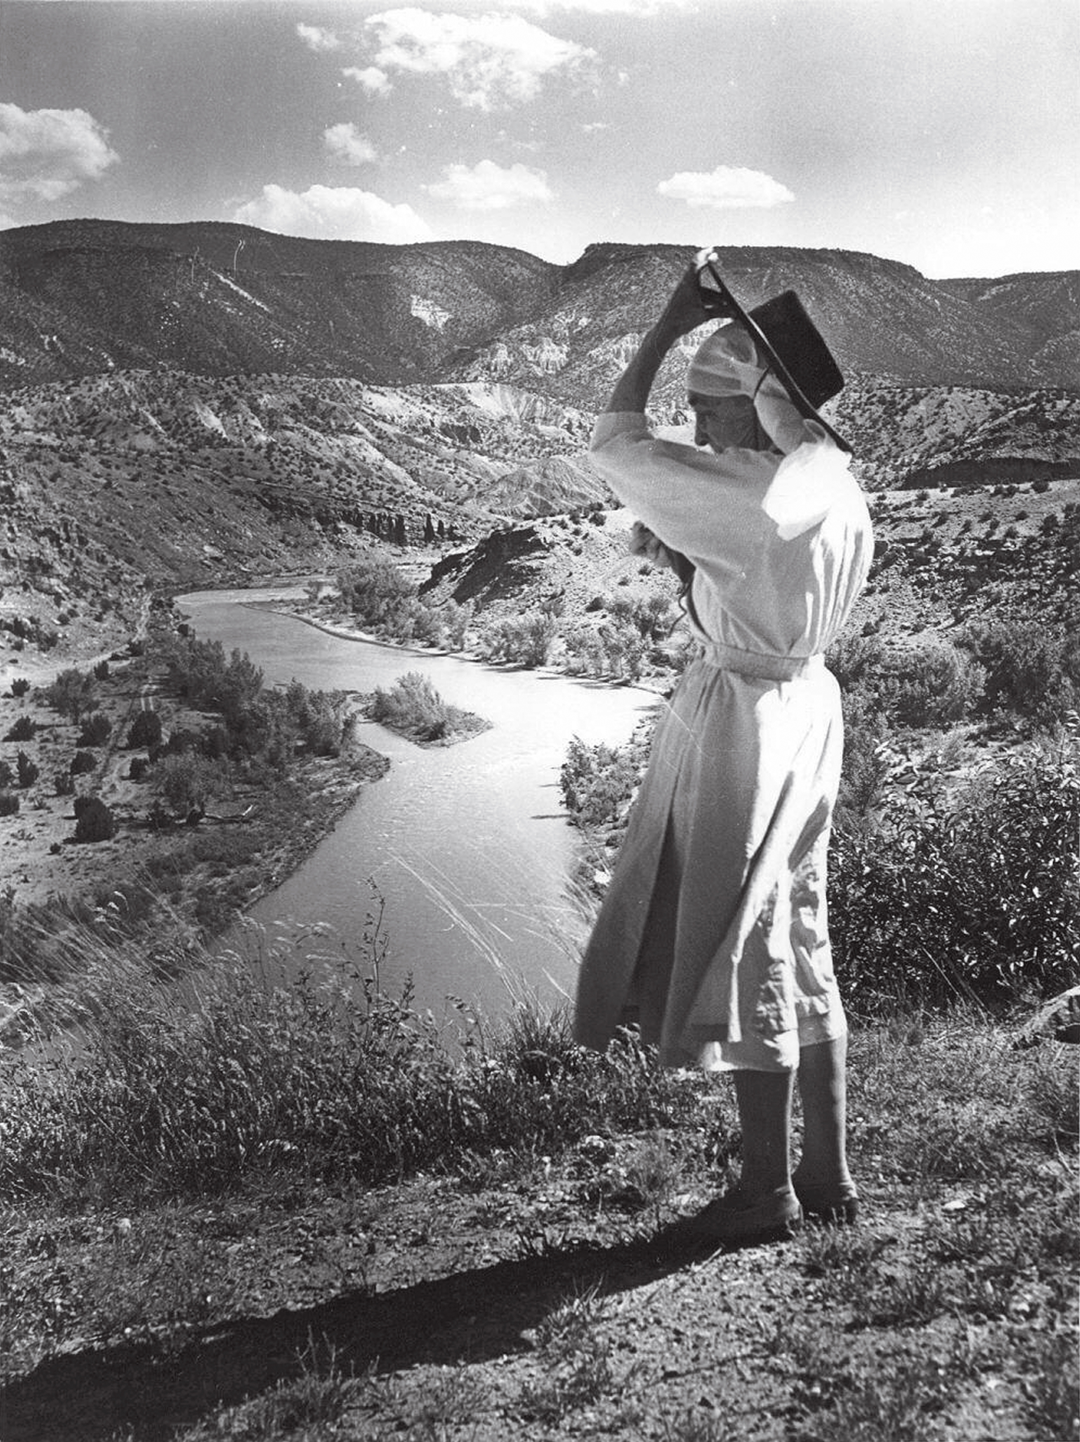 O'Keeffe in New Mexico , overlooking Chama River, 1961. © Todd Webb, Courtesy of Evans Gallery and Estate of Todd & Lucille Webb, Portland, Maine USA. As reproduced in our Georgia O'Keeffe book